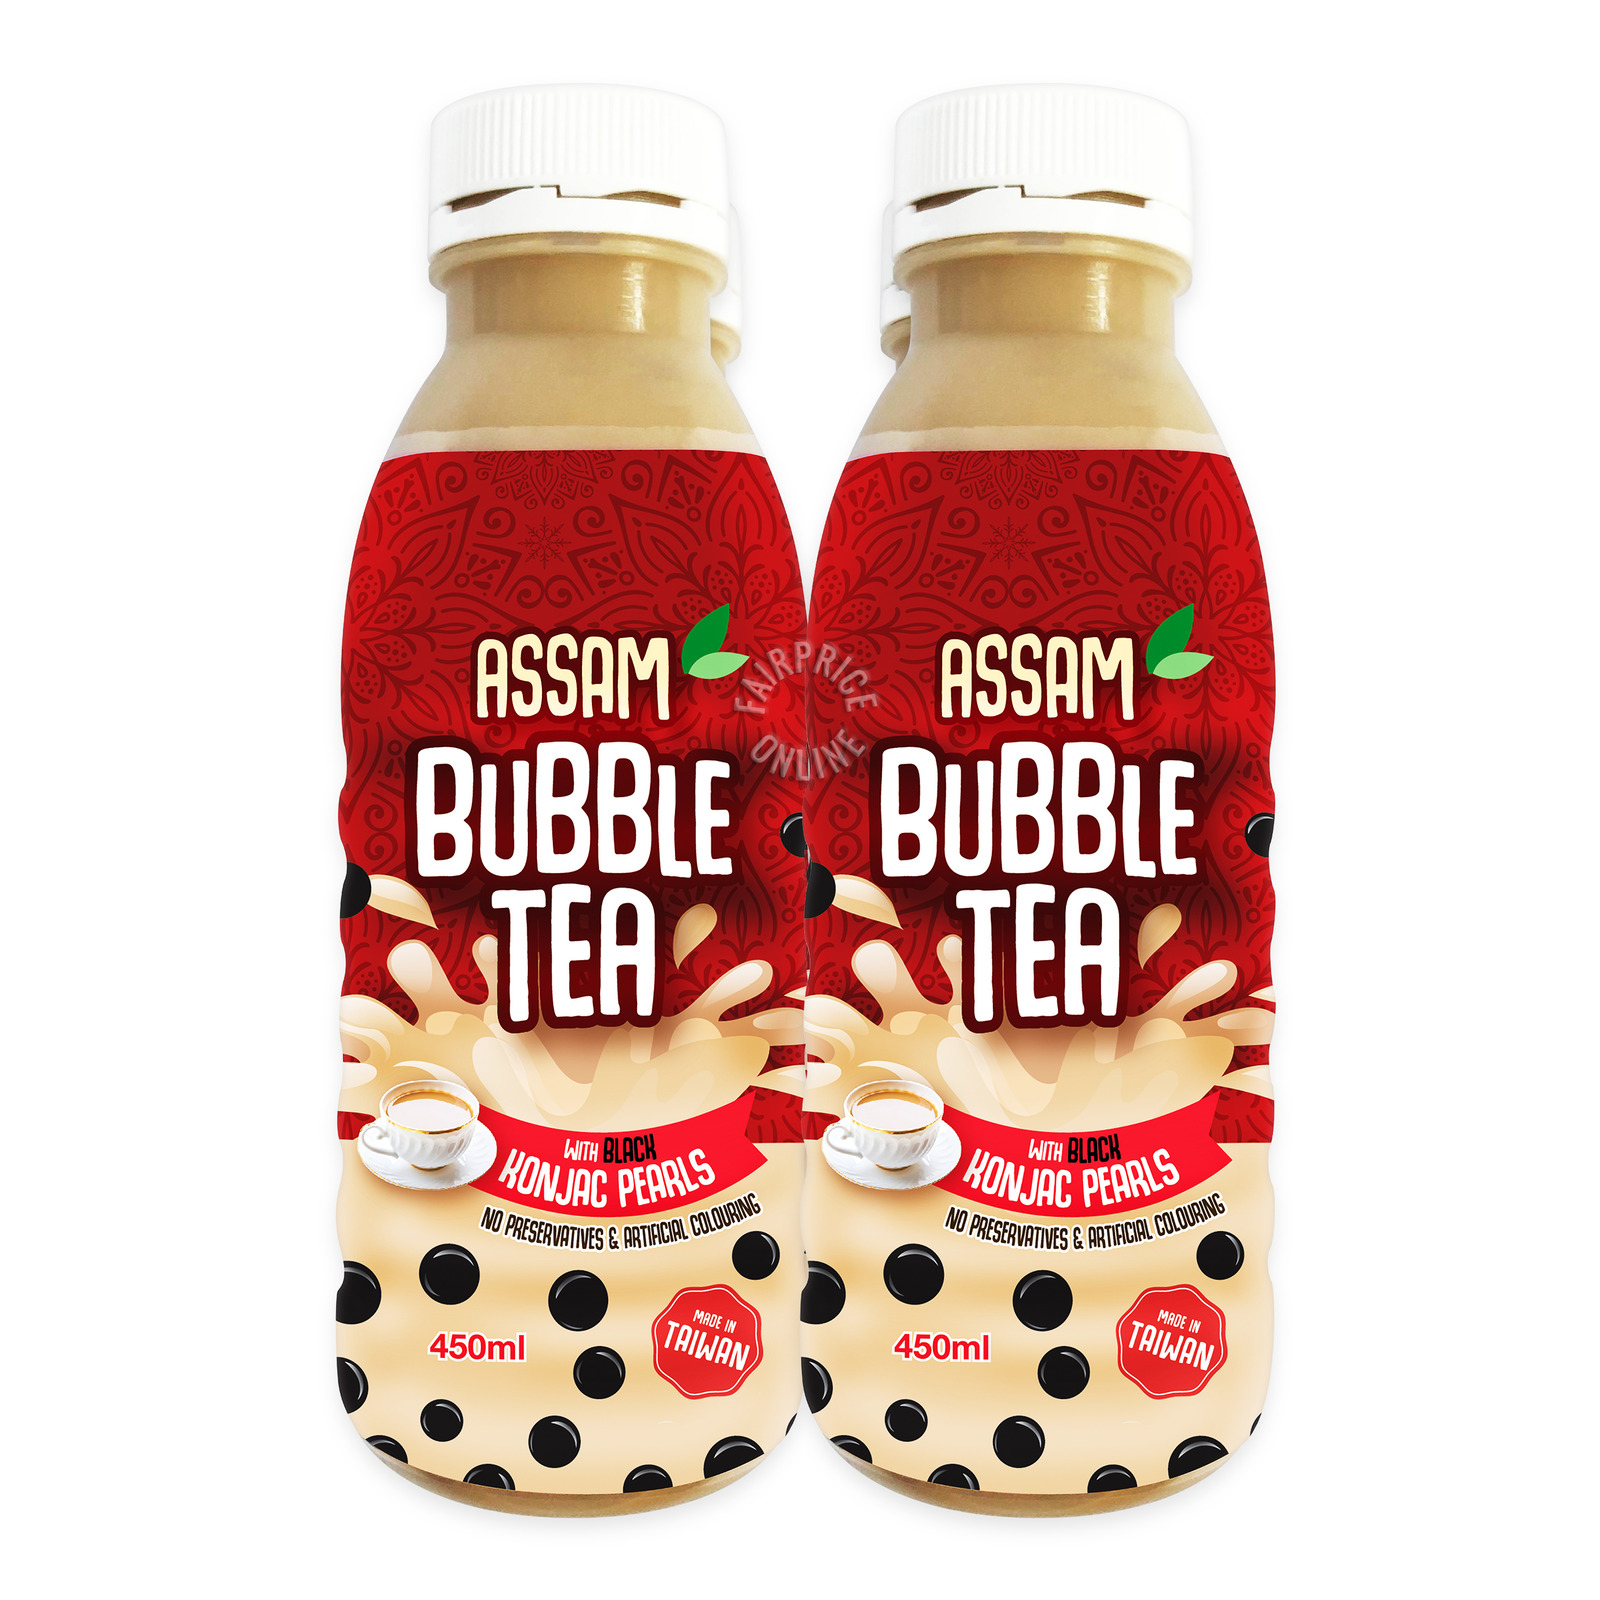 Polar Assam Bubble Tea Drink with Black Konjac Pearls